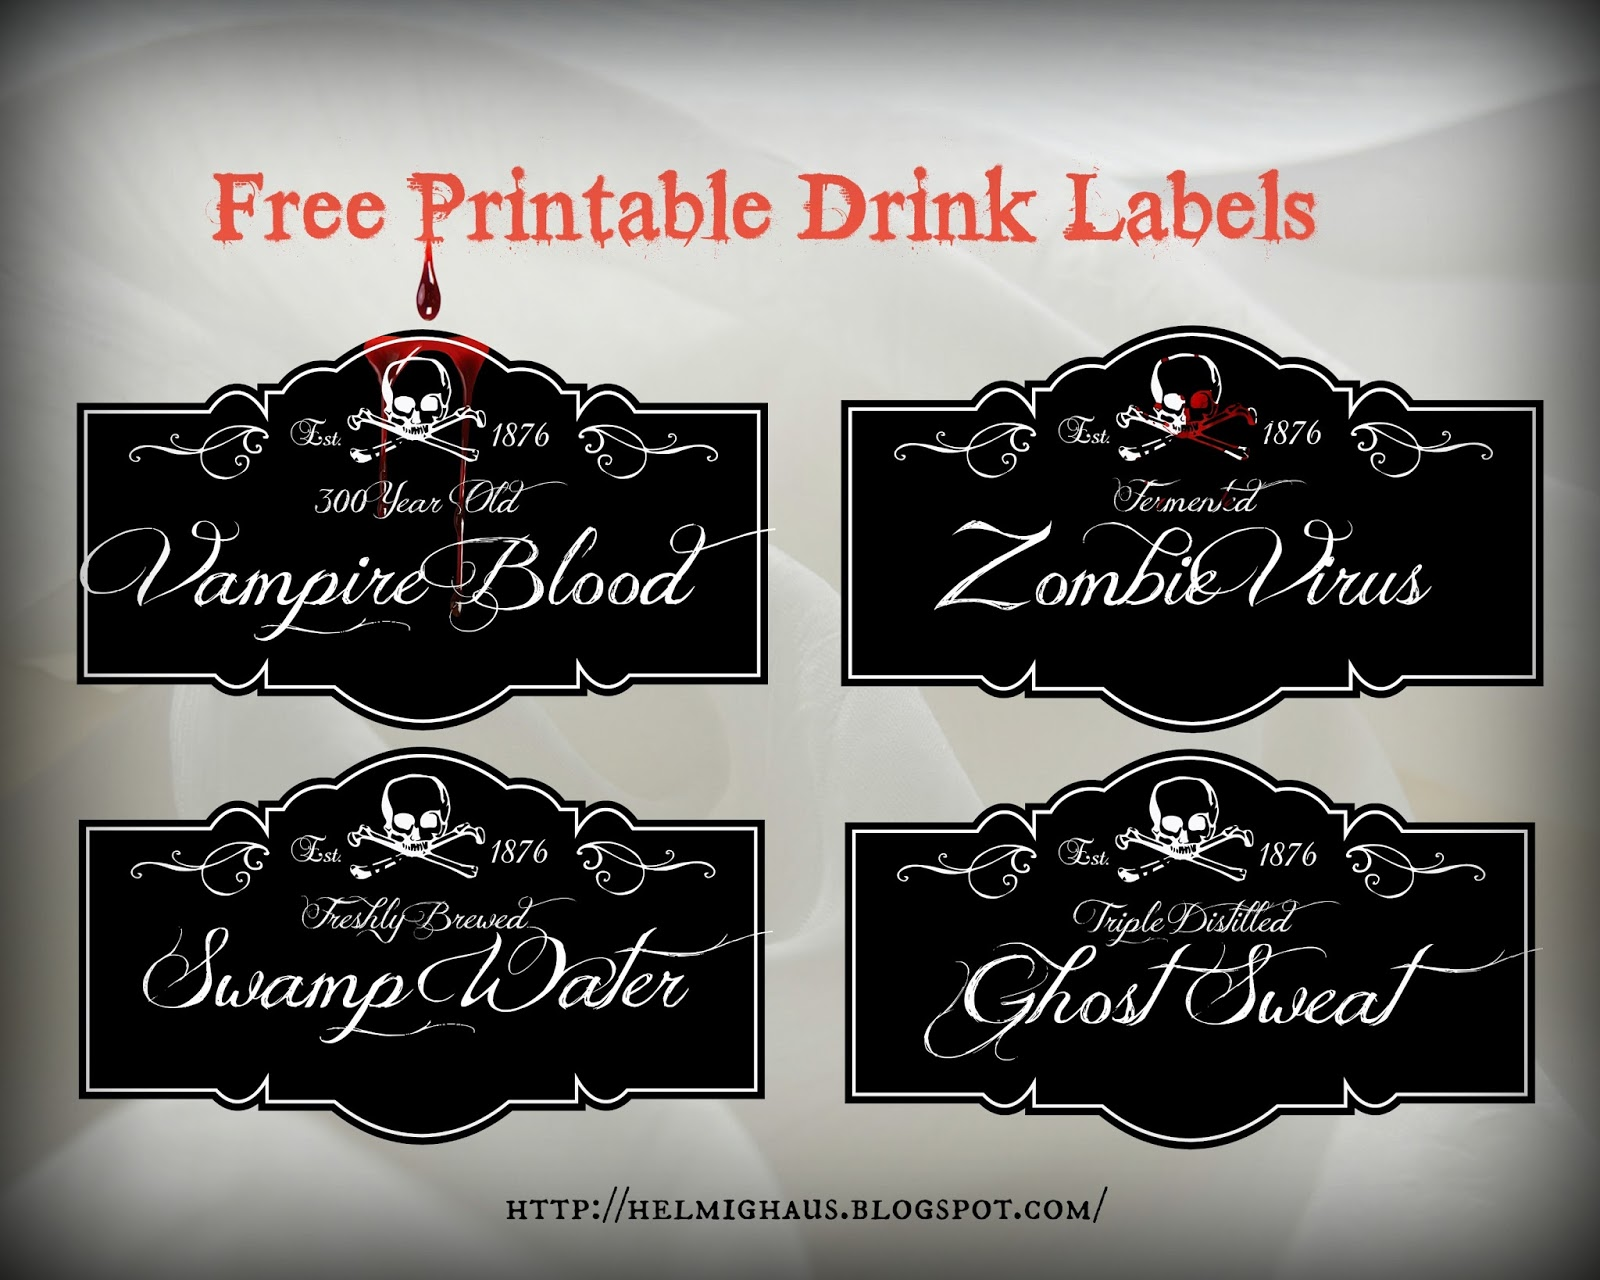 Free Halloween printable drink labels via Helmig Haus    http://helmighaus.blogspot.com/